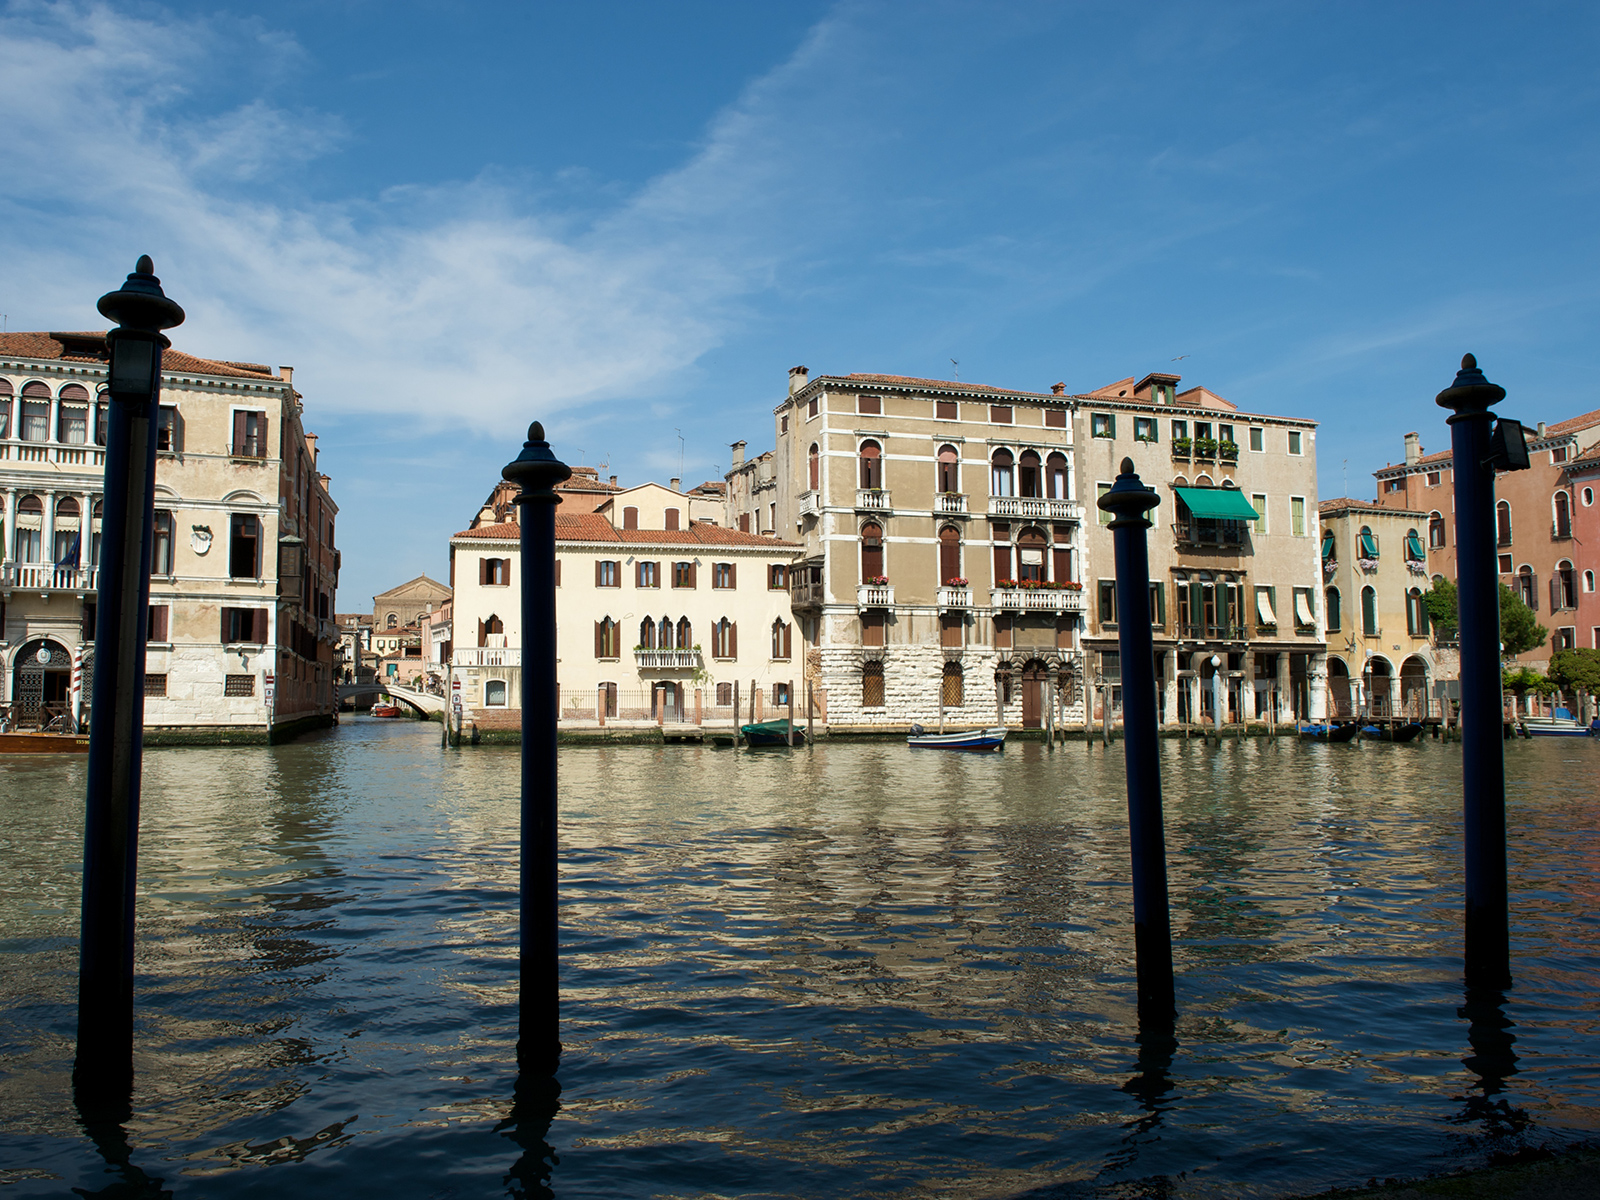 mooring posts on the side of the Grand Canal in Venice, Italy